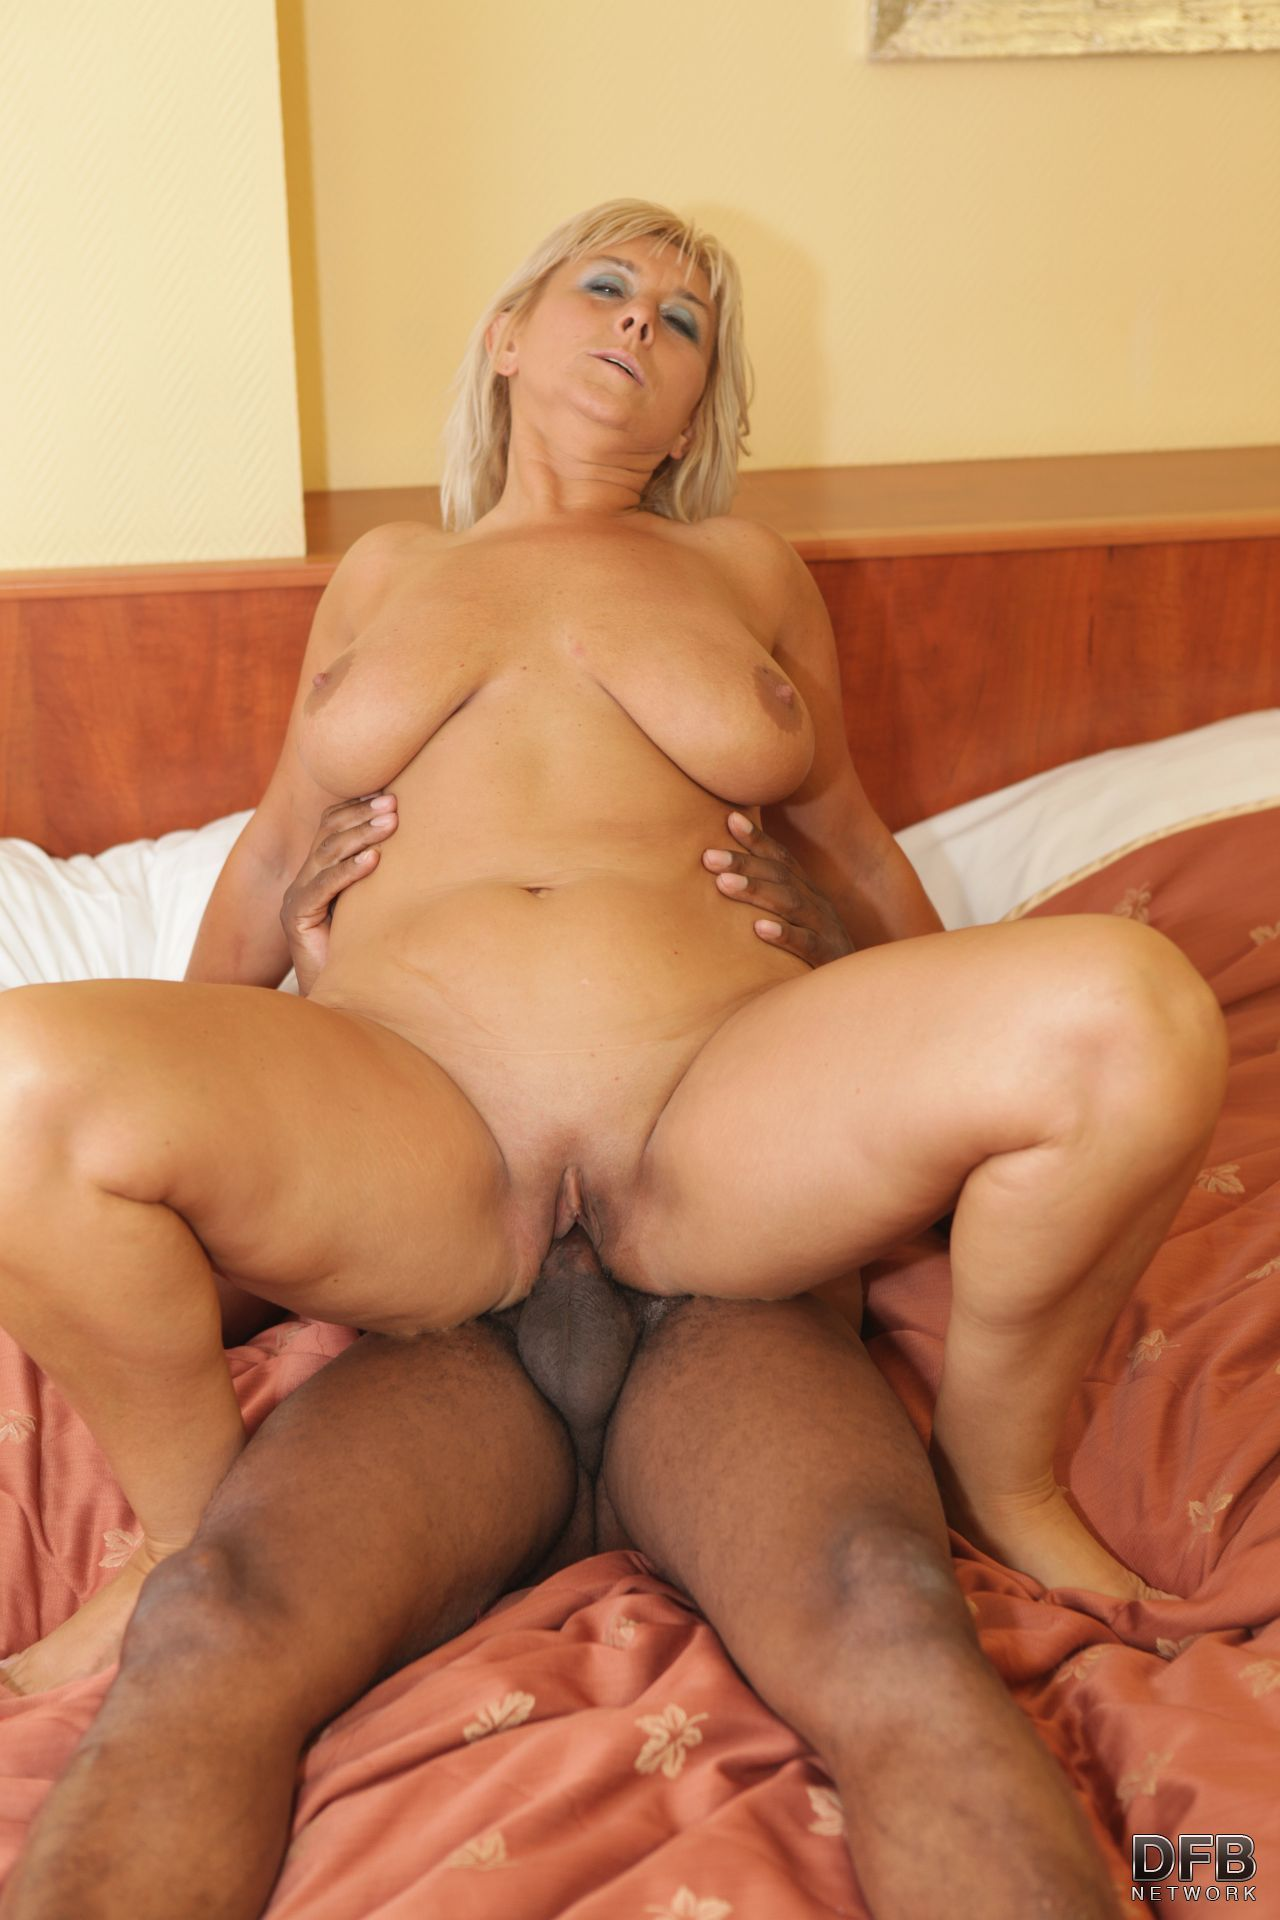 image Interracial doggystyle dick down tiny tits tiny cunt huge cock